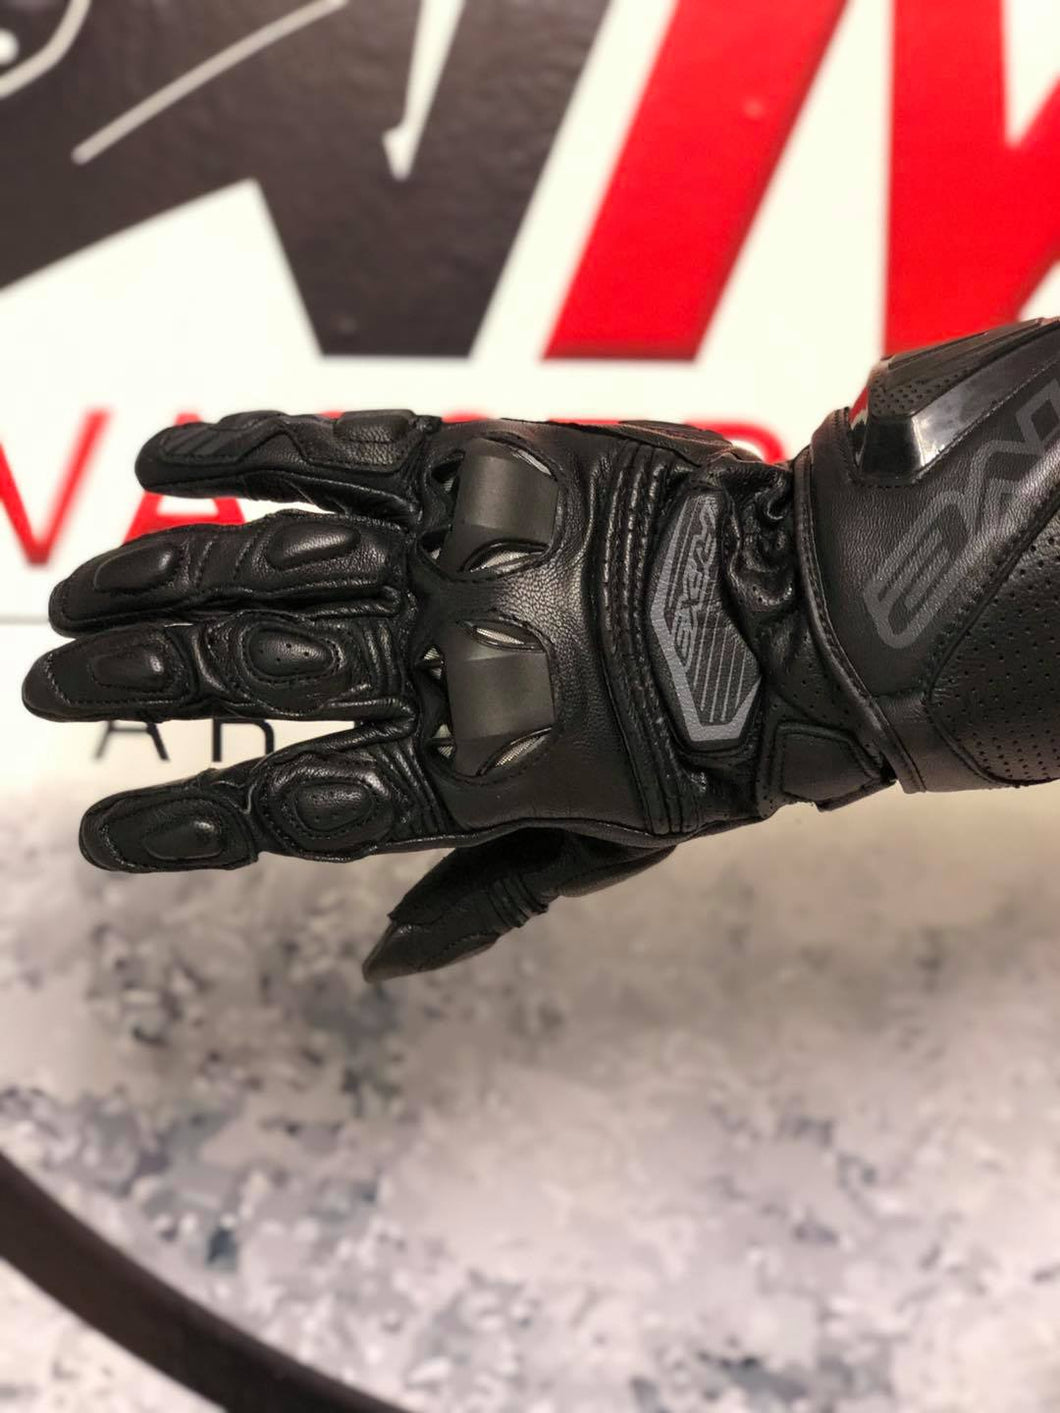 Guantes FIVE RFX3 Racing